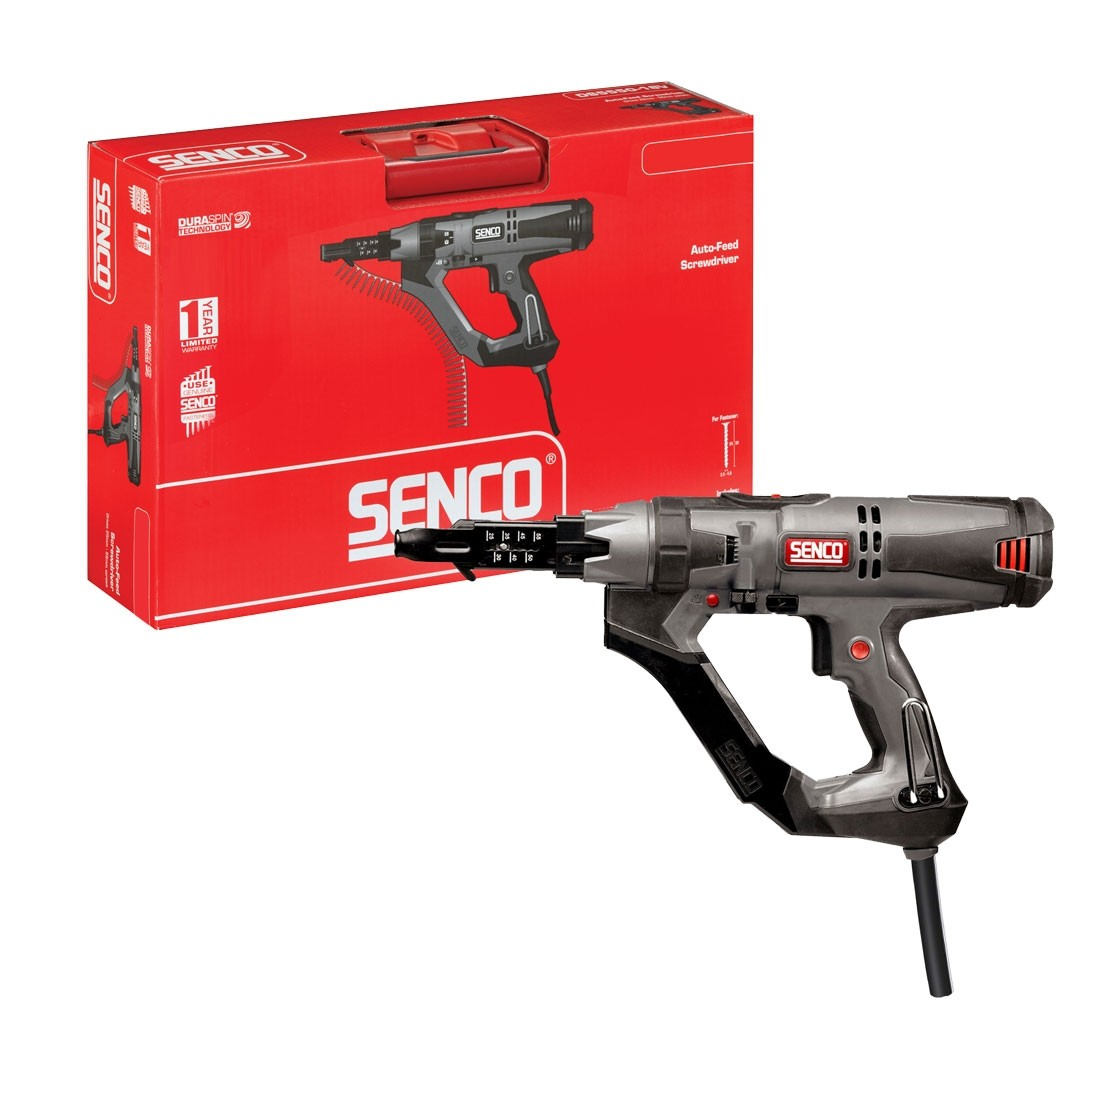 Senco DS5550-AC Duraspin Drywall Screwdriver